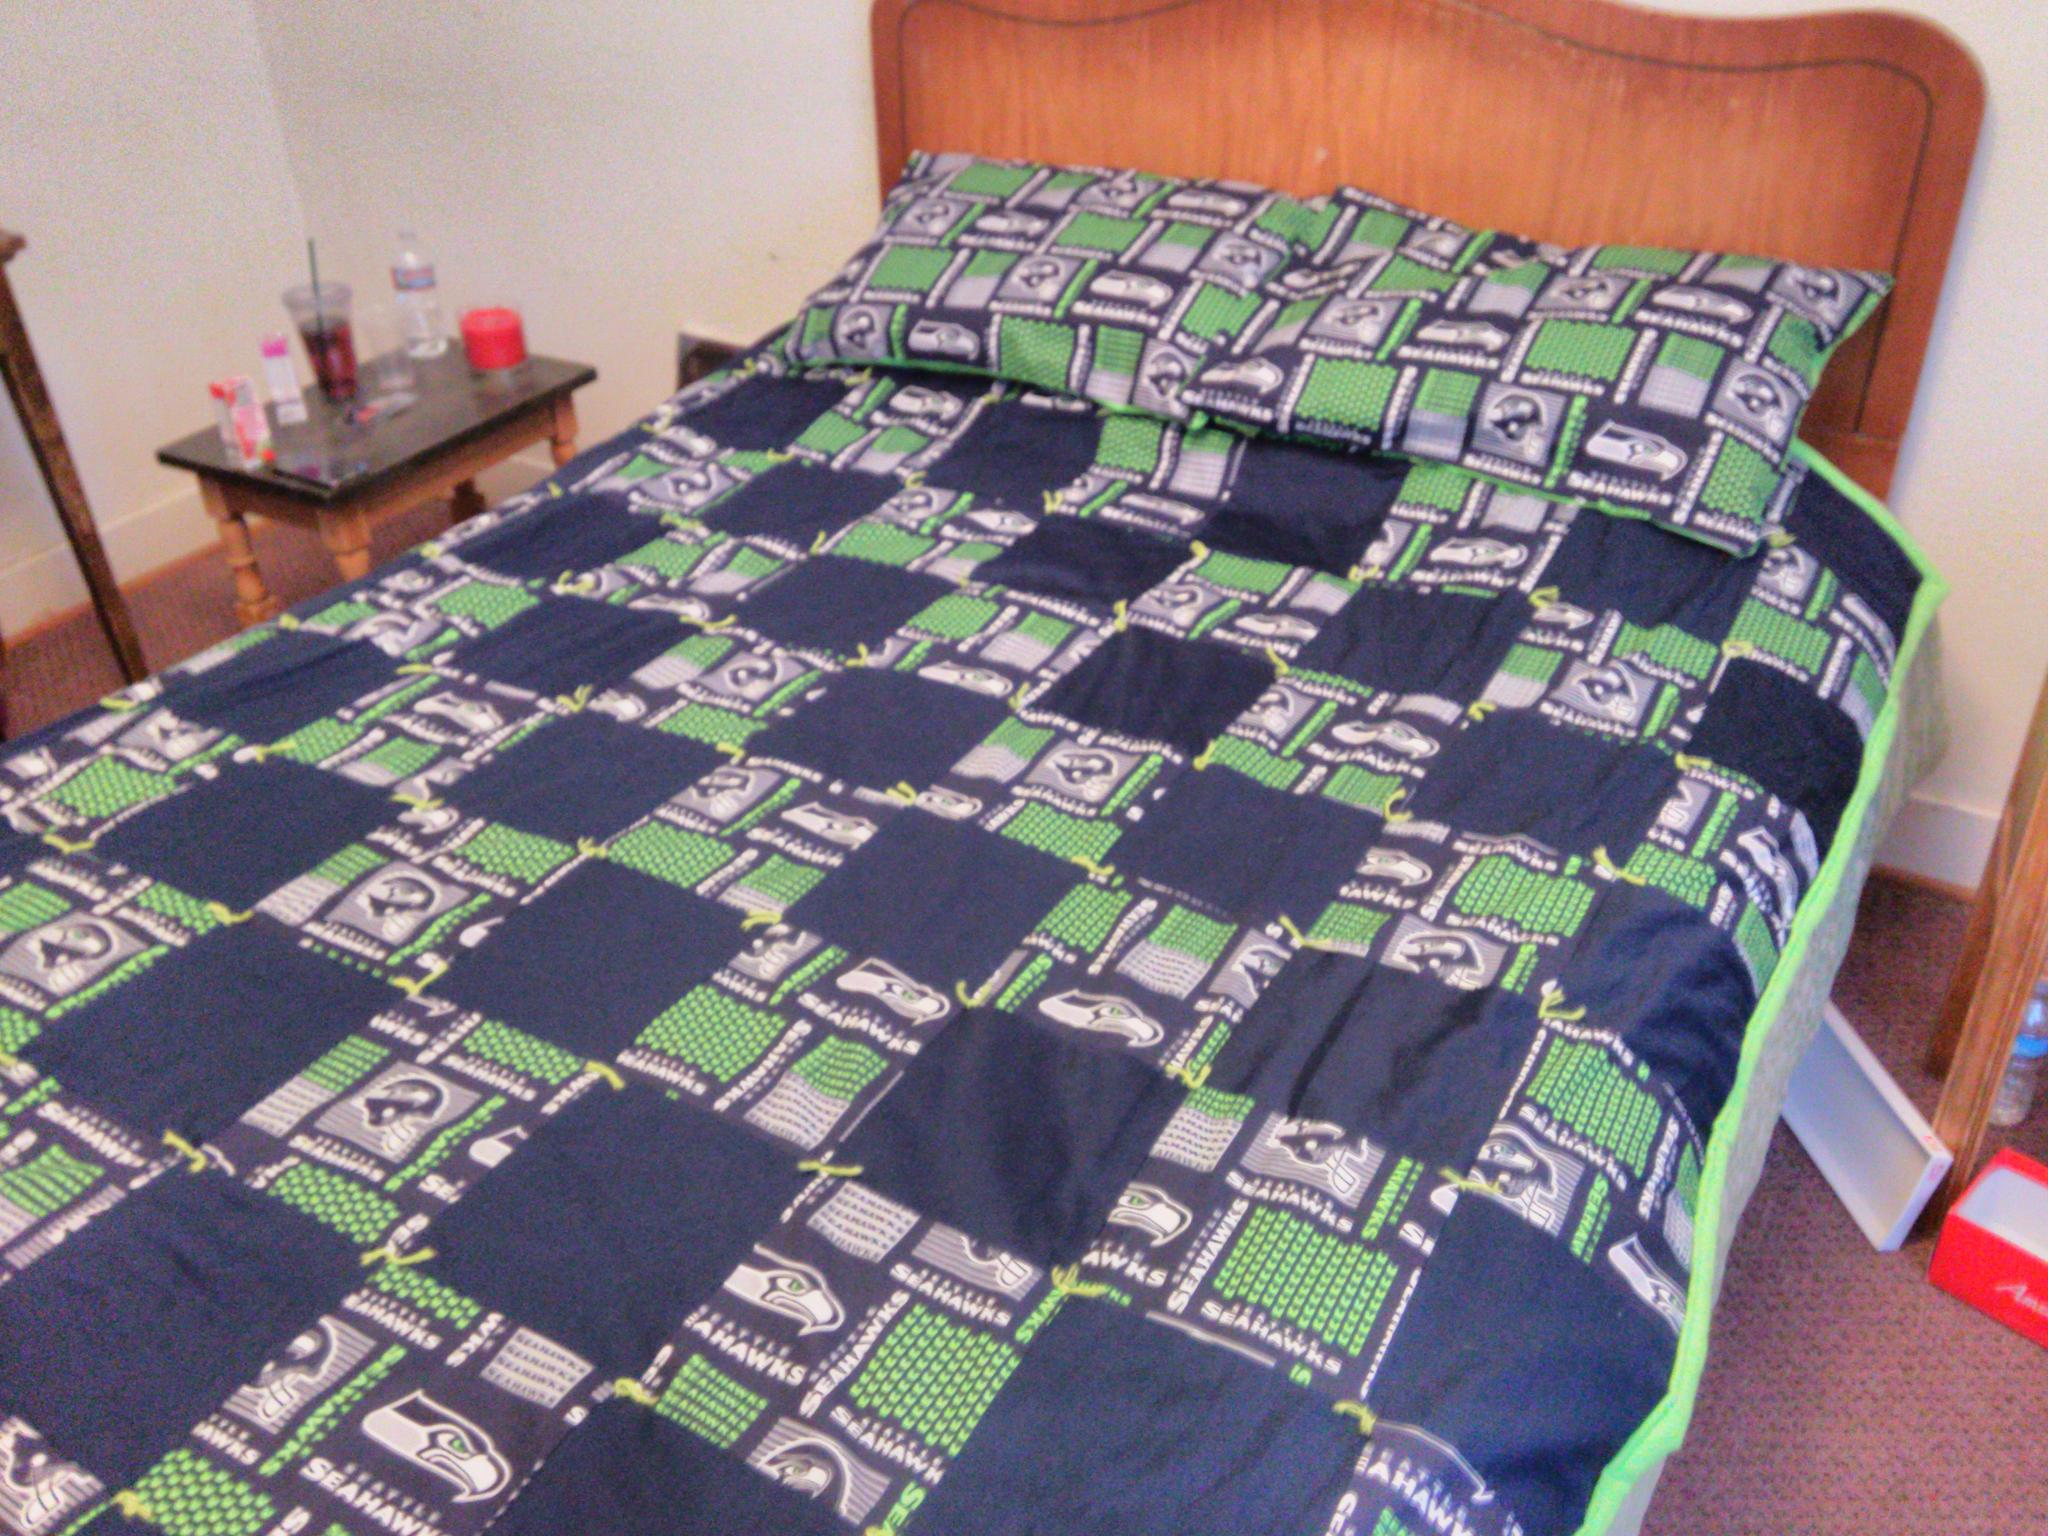 First quilt I ever made. Symes, Hots Springs, MT